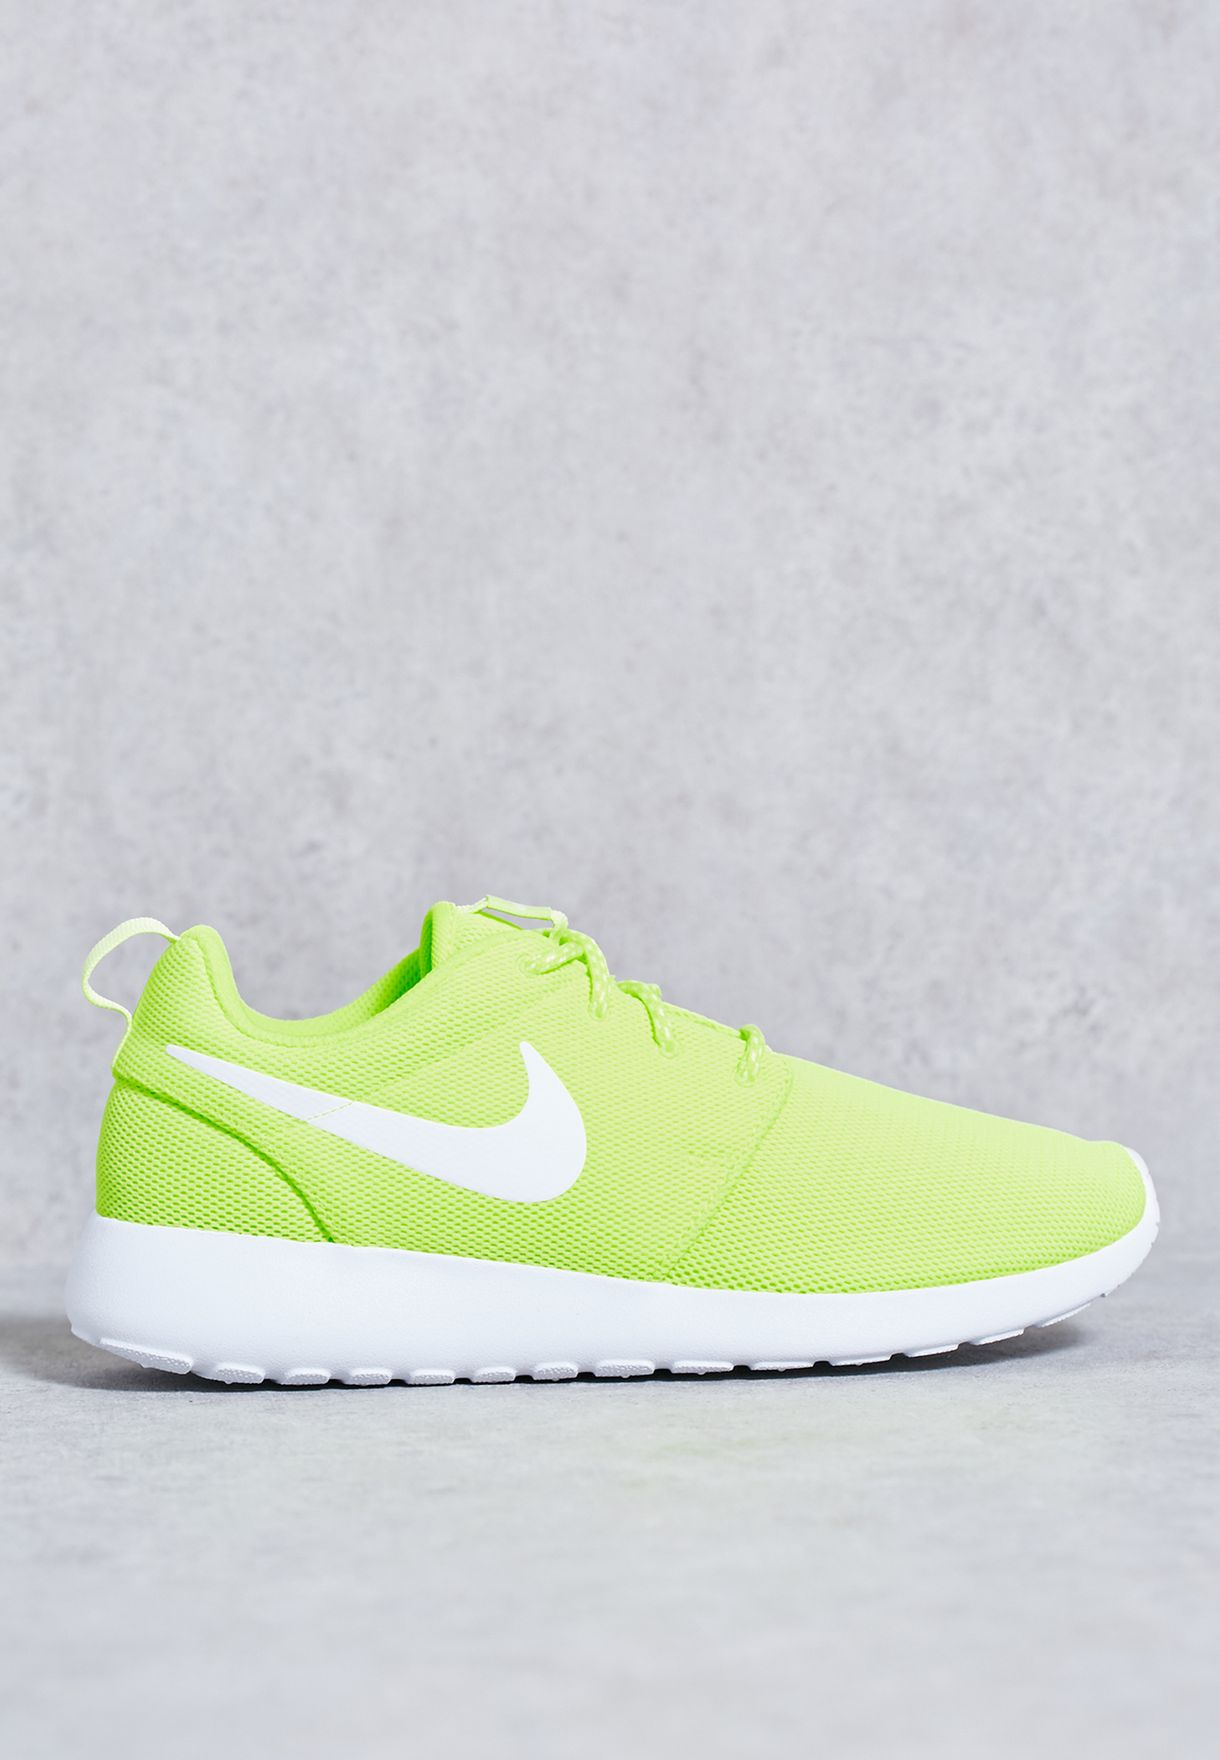 buy online 559cc ecea6 Nike. Roshe One. 37.90 KWD 30.30 KWD. Fast Delivery. Size. 36  36.5  37.5   38  38.5 ...